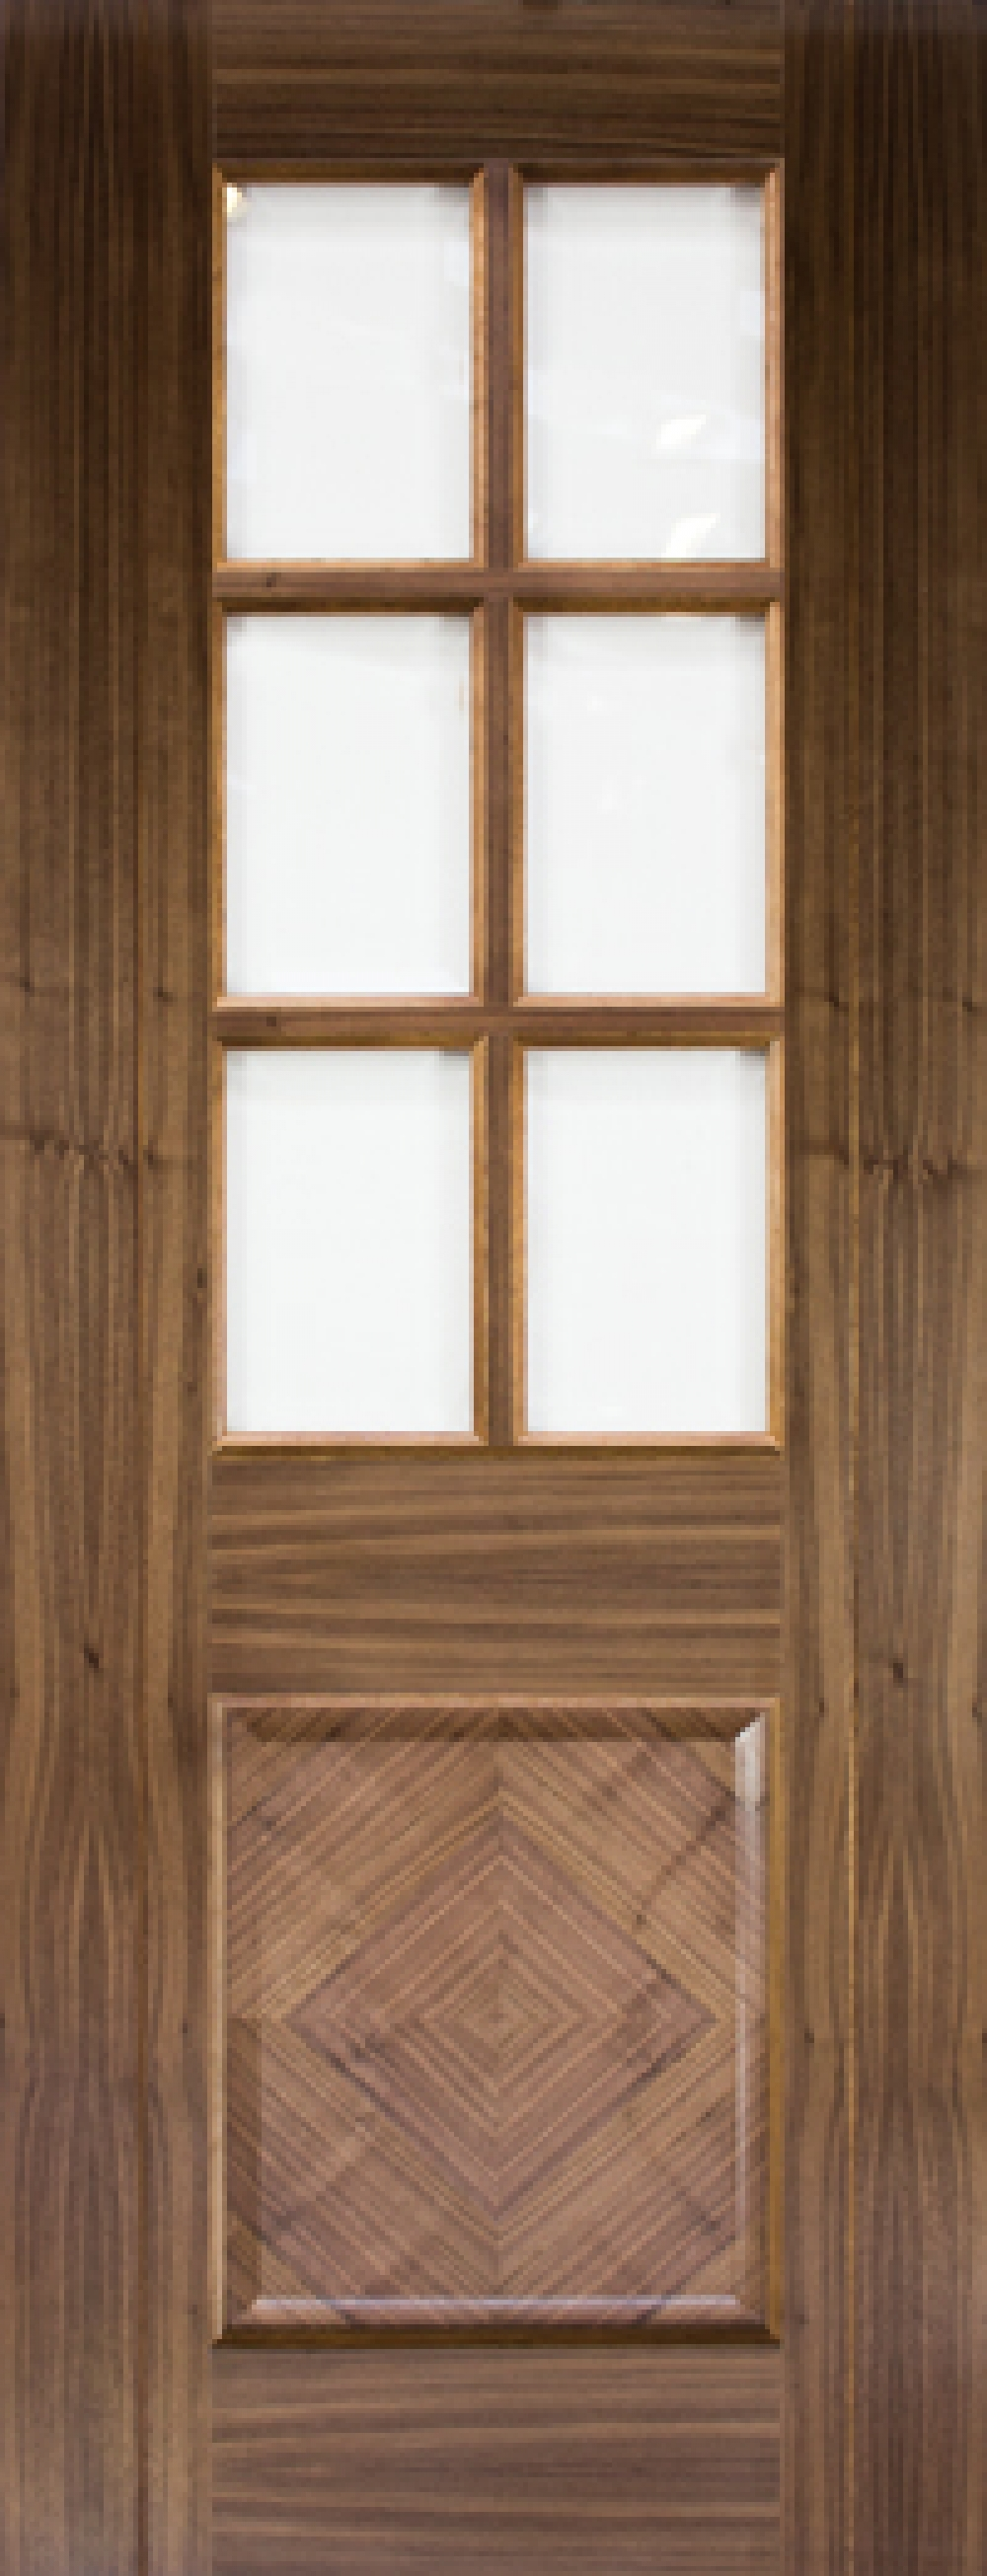 Kensington Walnut Glazed Door - Prefinished